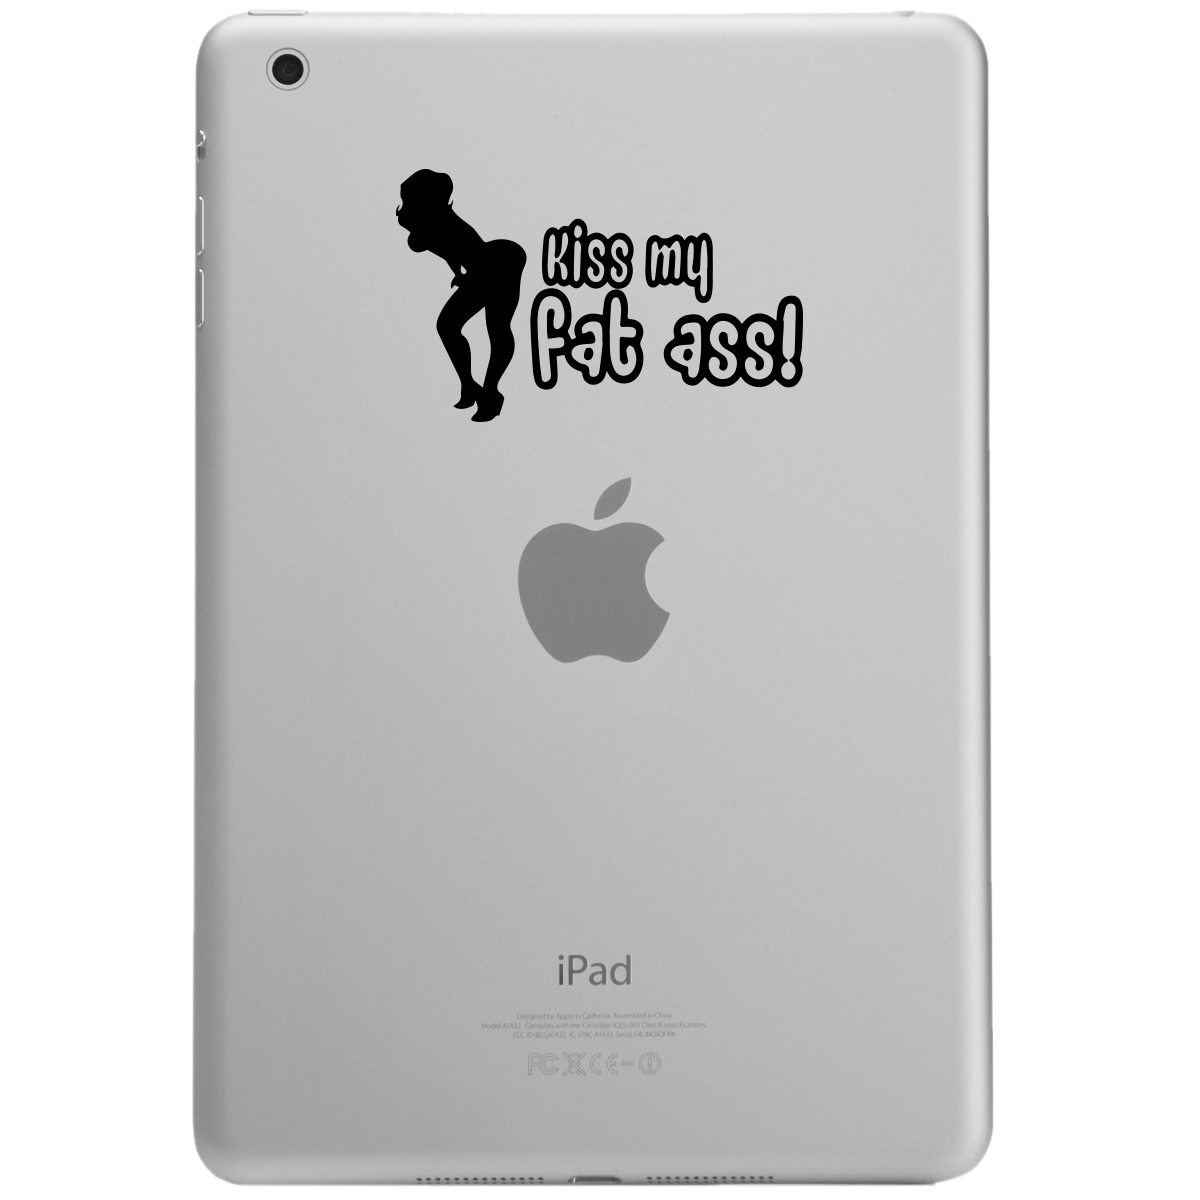 Kiss My Fat Ass Funny iPad Tablet Vinyl Sticker Decal